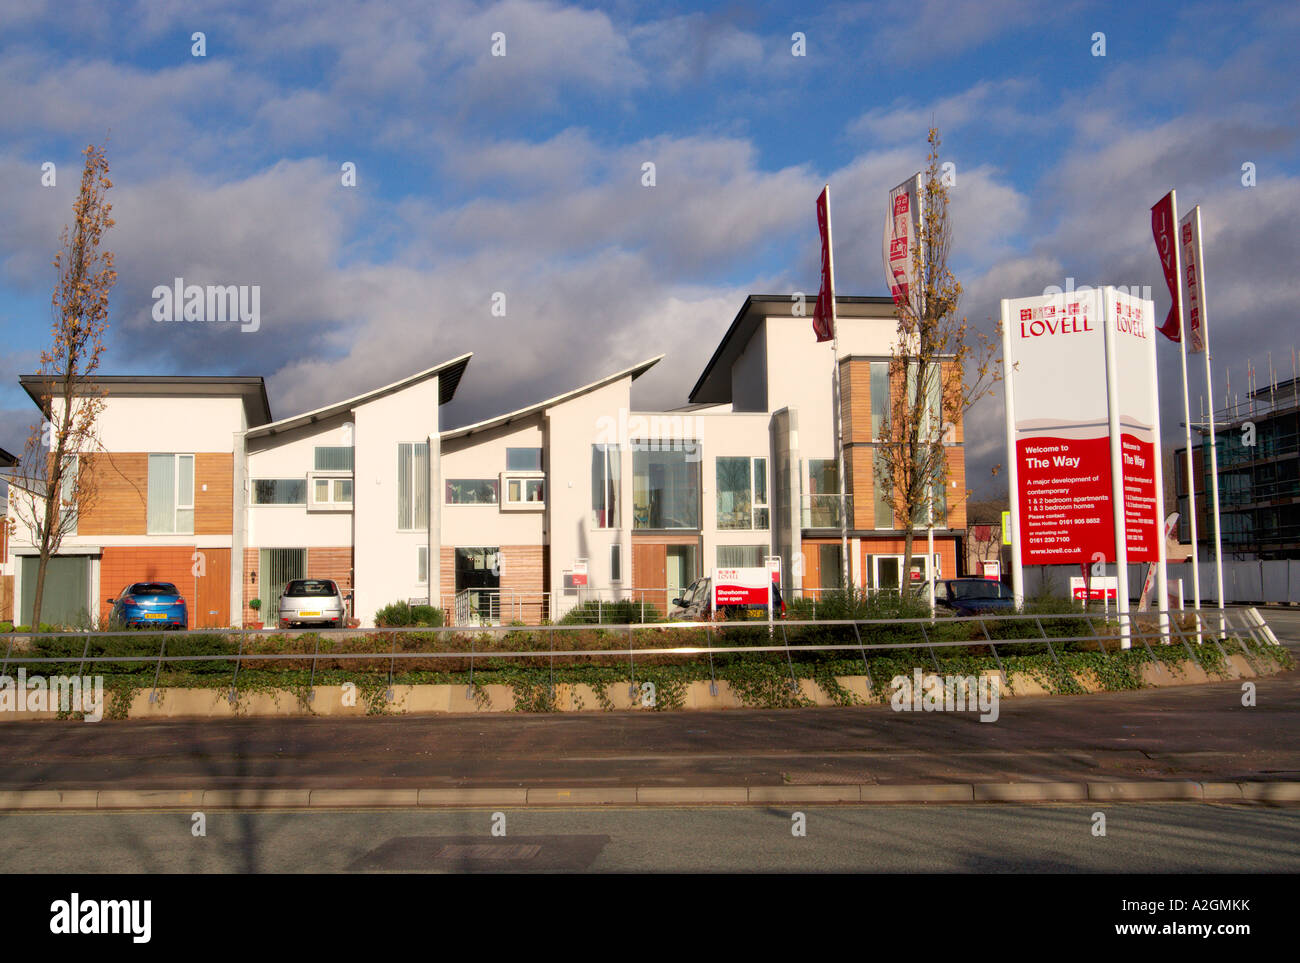 Innovative and environmentally friendly homes being built in the deprived and run down East Manchester area of Beswick - Stock Image